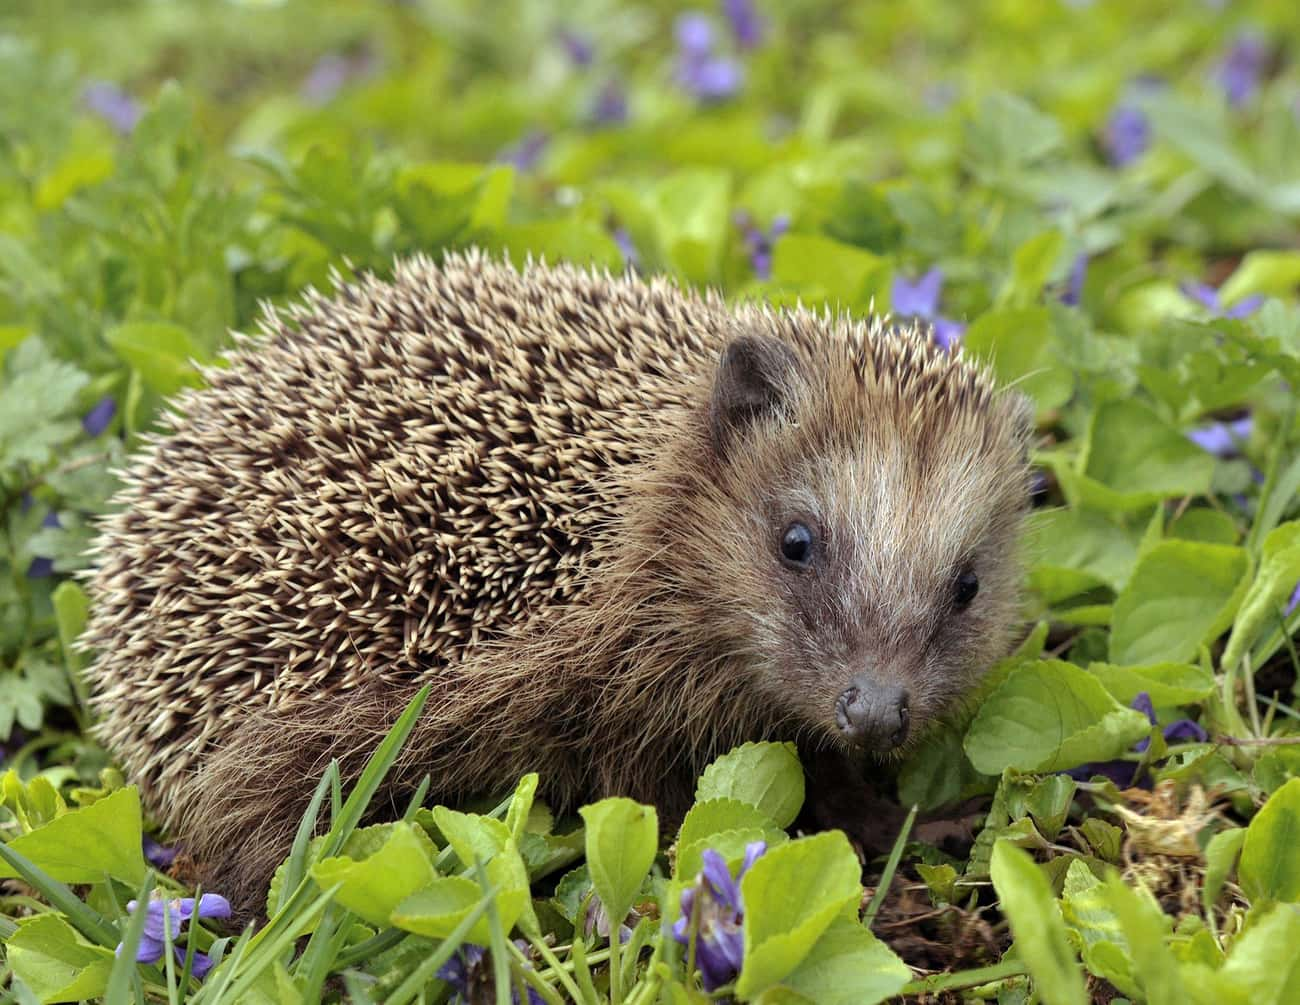 Hedgehogs Have Around 5,000 Sp is listed (or ranked) 1 on the list Hedgehogs Are The Cutest Mammal In The Animal Kingdom